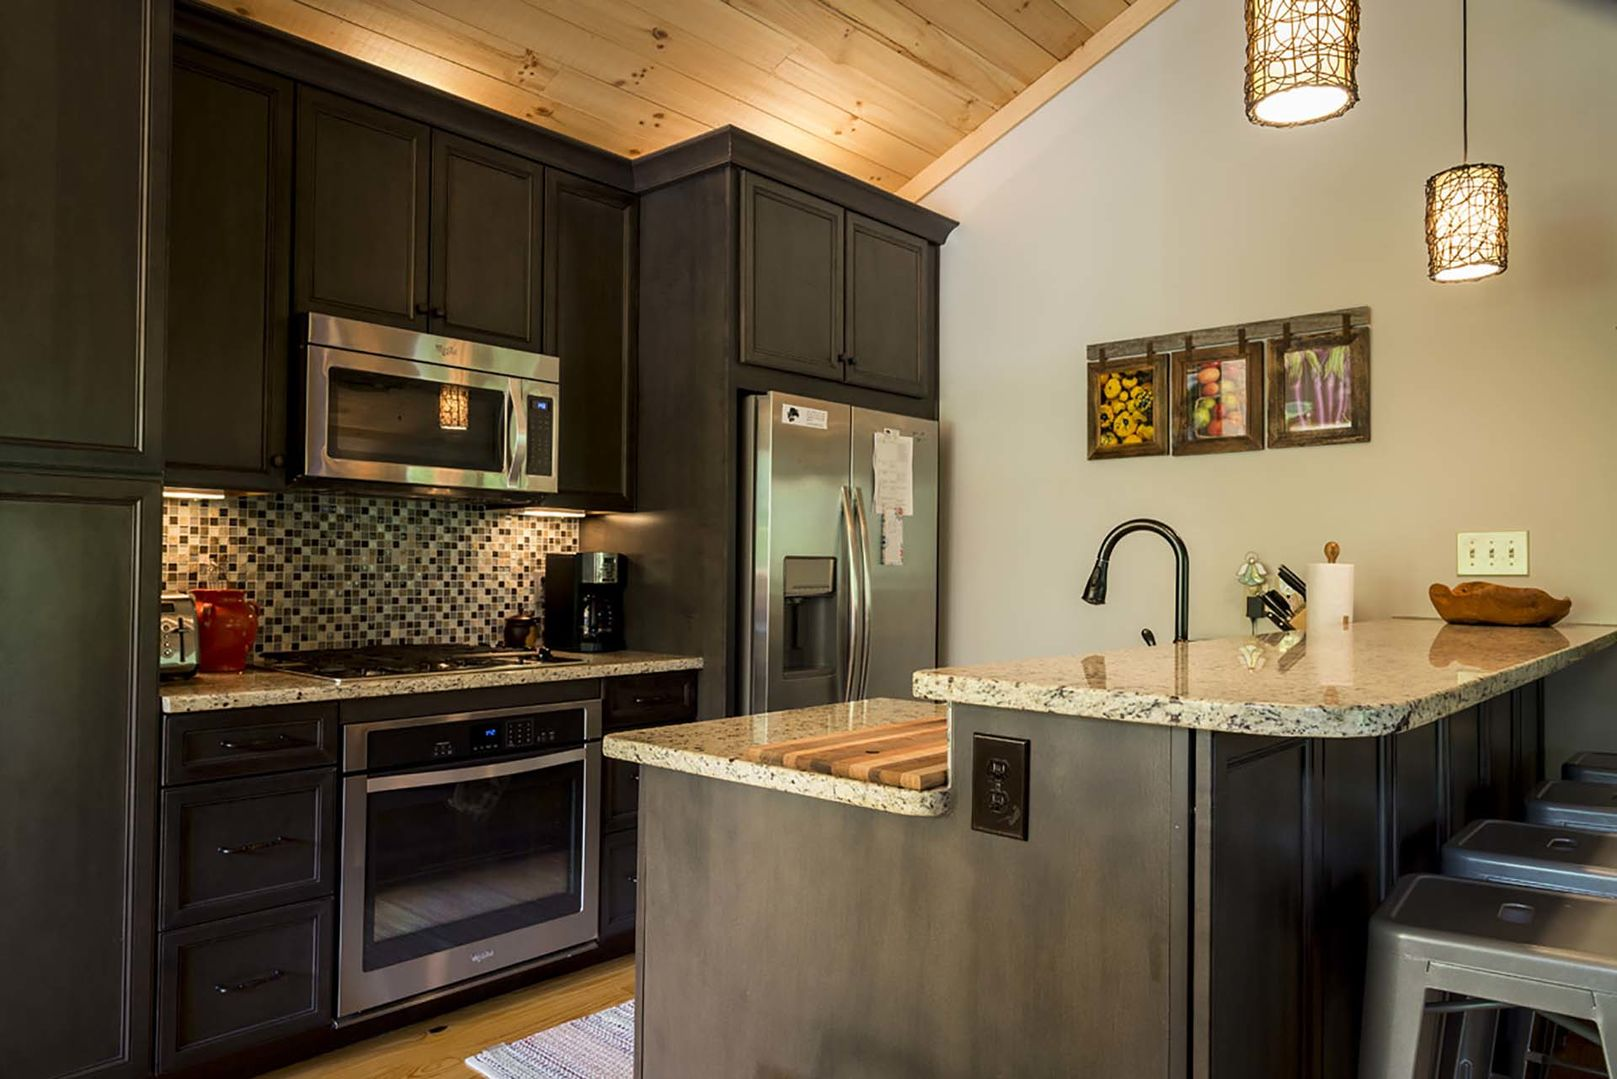 Well stocked kitchen with stainless steel appliances and 4 stools at the counter